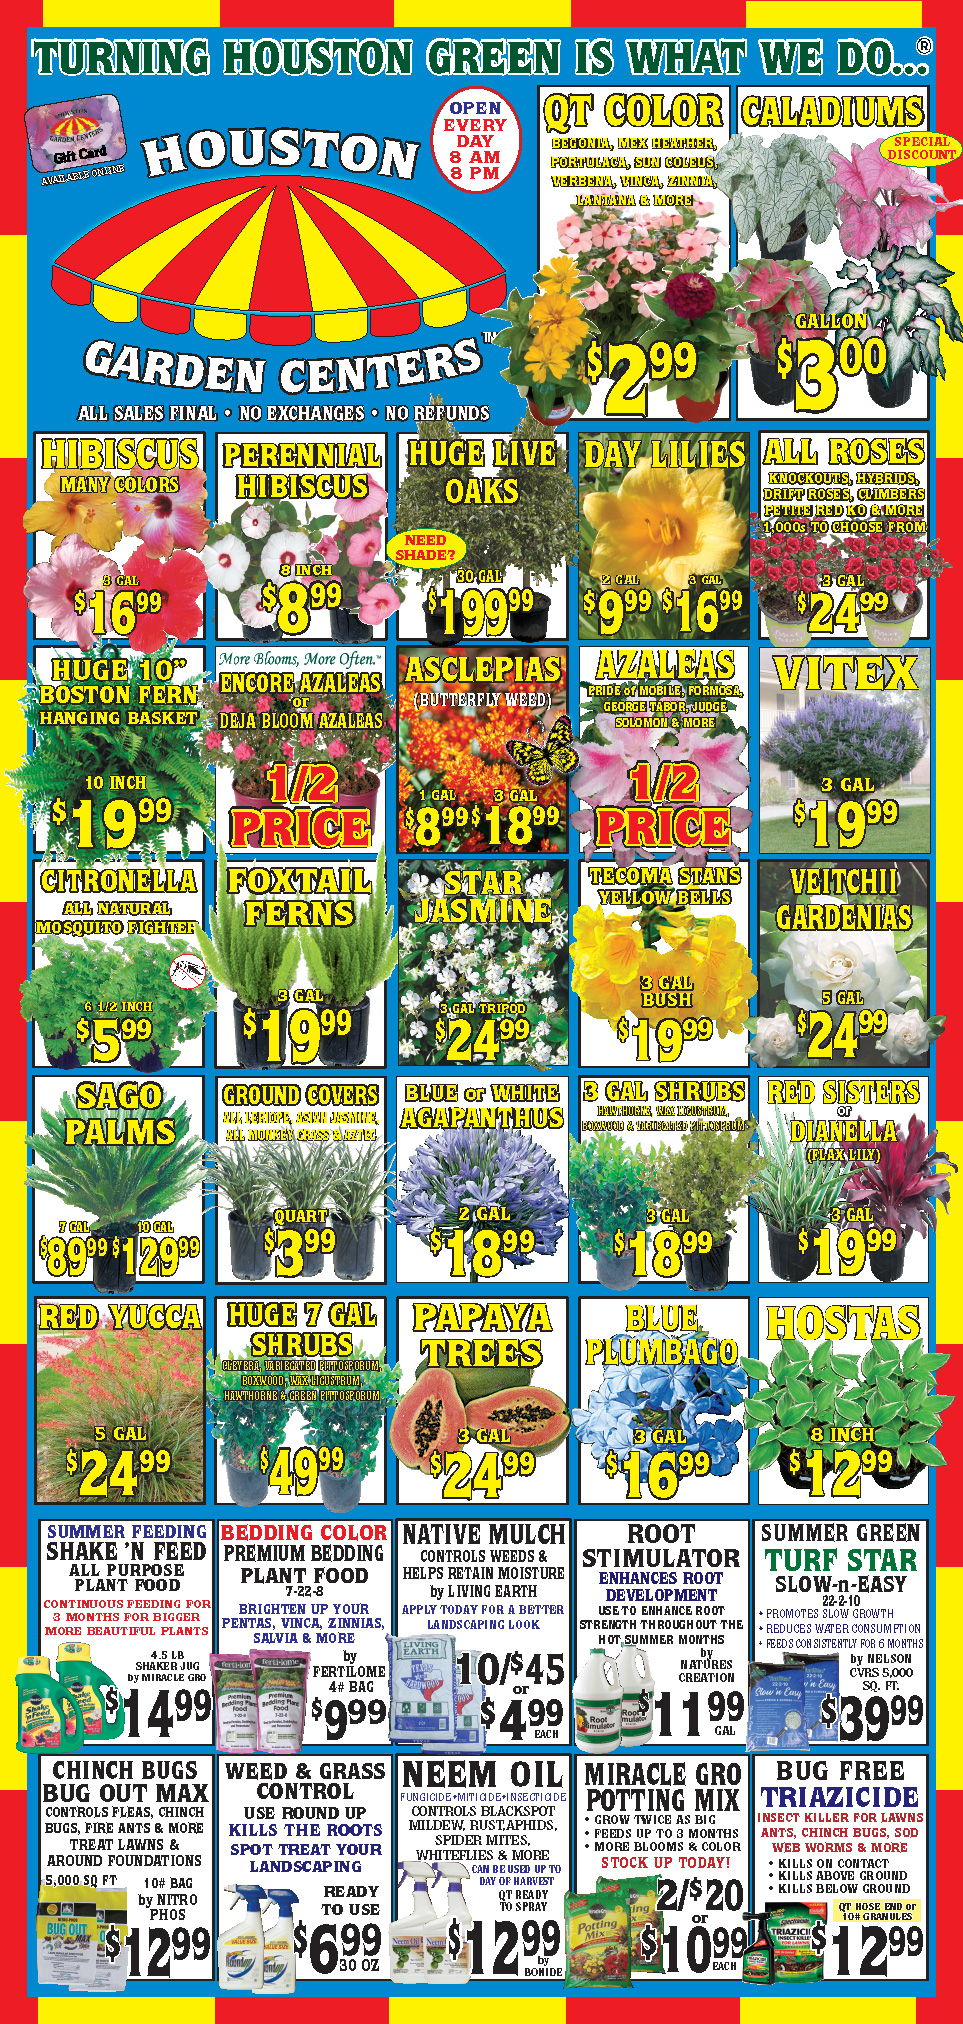 Houston Garden Centers Great Deals Every Day At Your